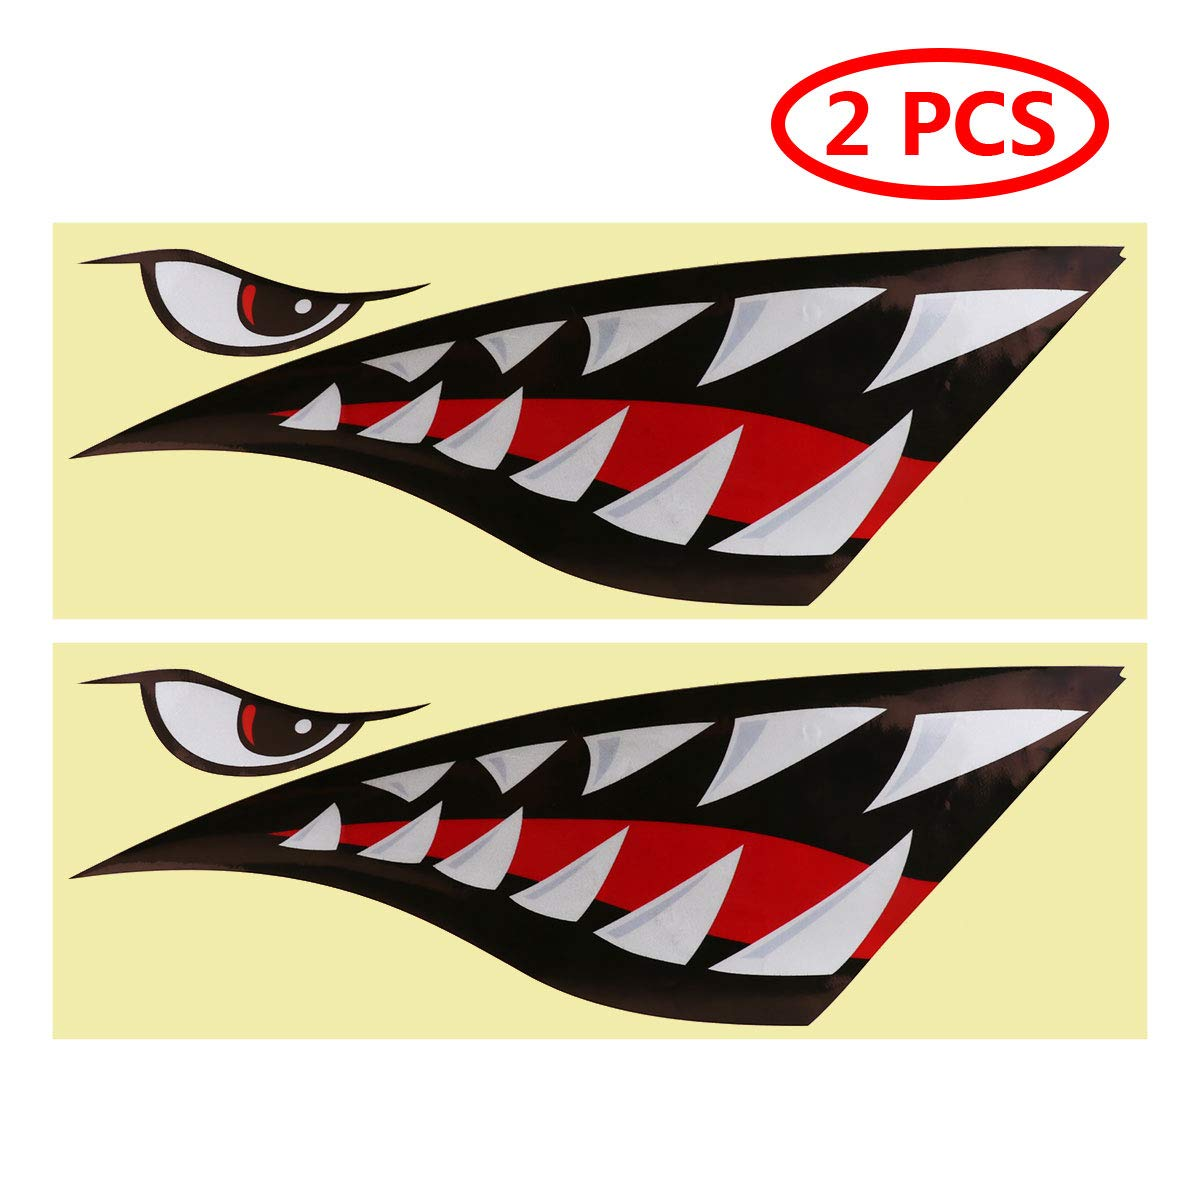 Freebily 2pcs Shark Teeth Mouth Reflective Decals Sticker Fishing Boat Canoe Car Truck Kayak Graphics Accessories